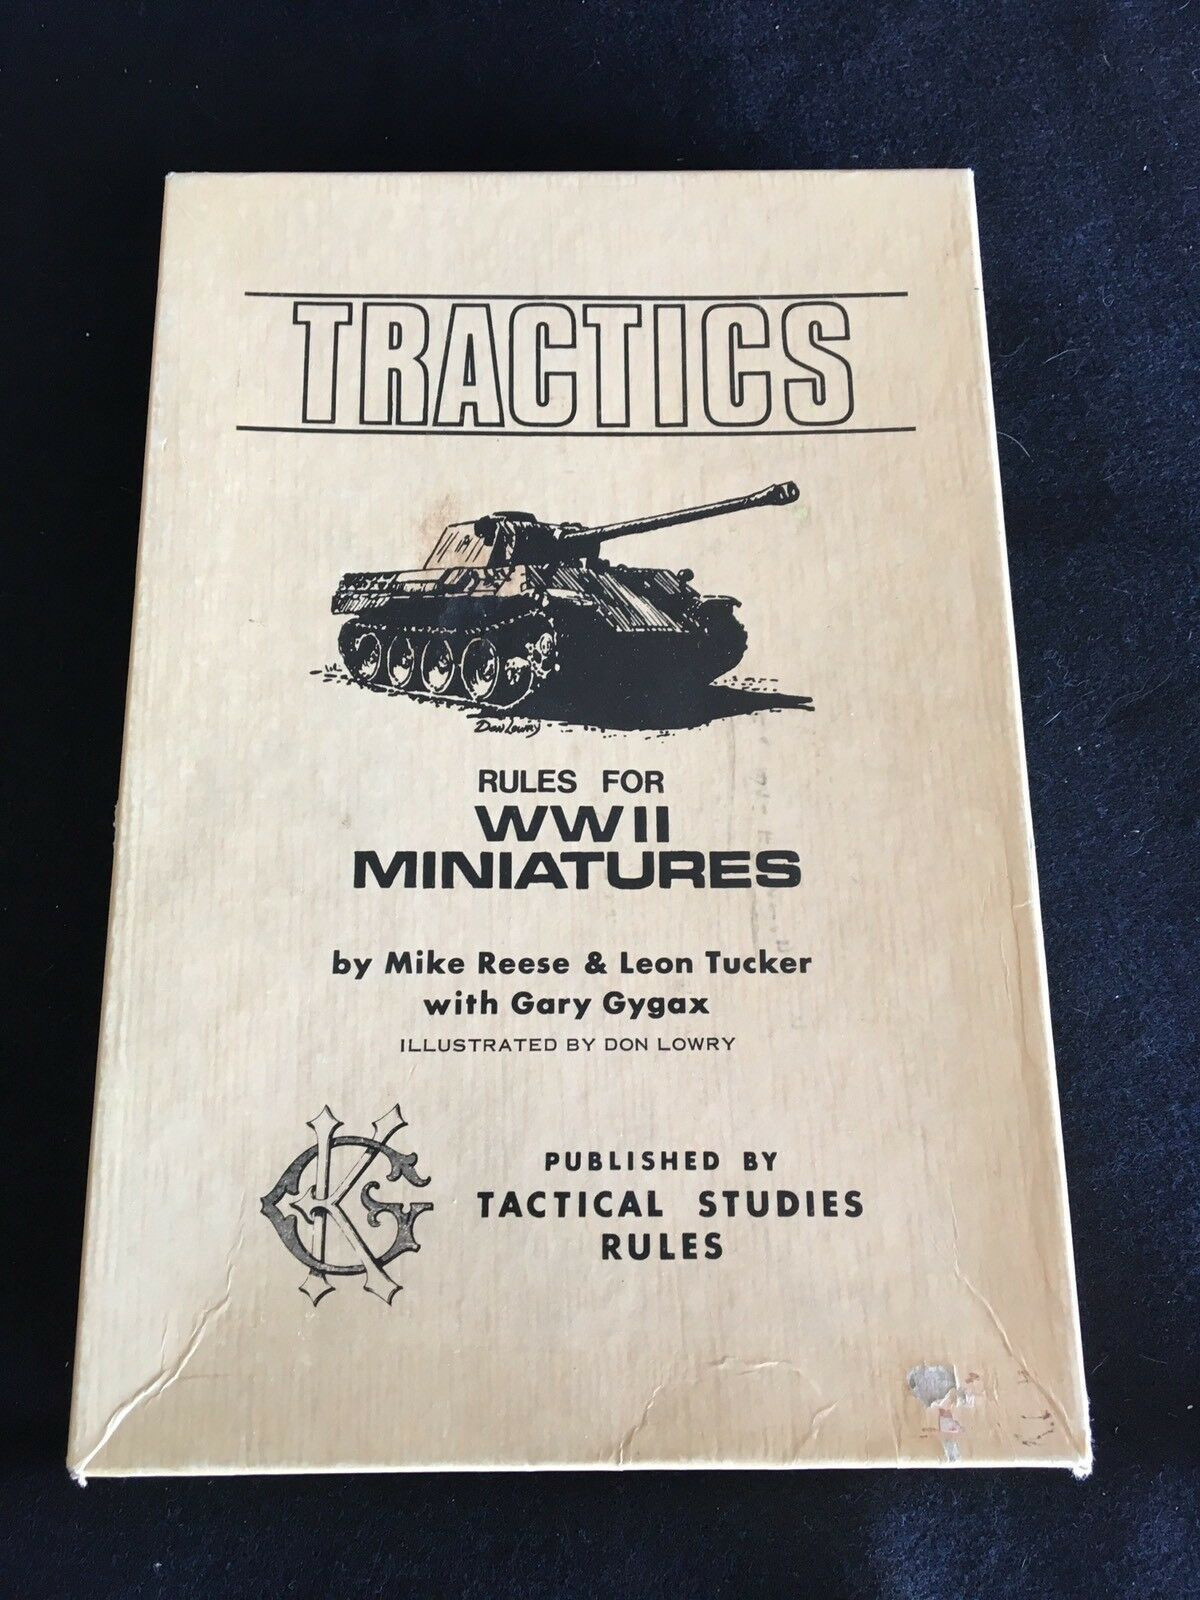 Tractics Rules For WWII Miniatures Tactical Studies Rules Rules Rules 1975 e4712c